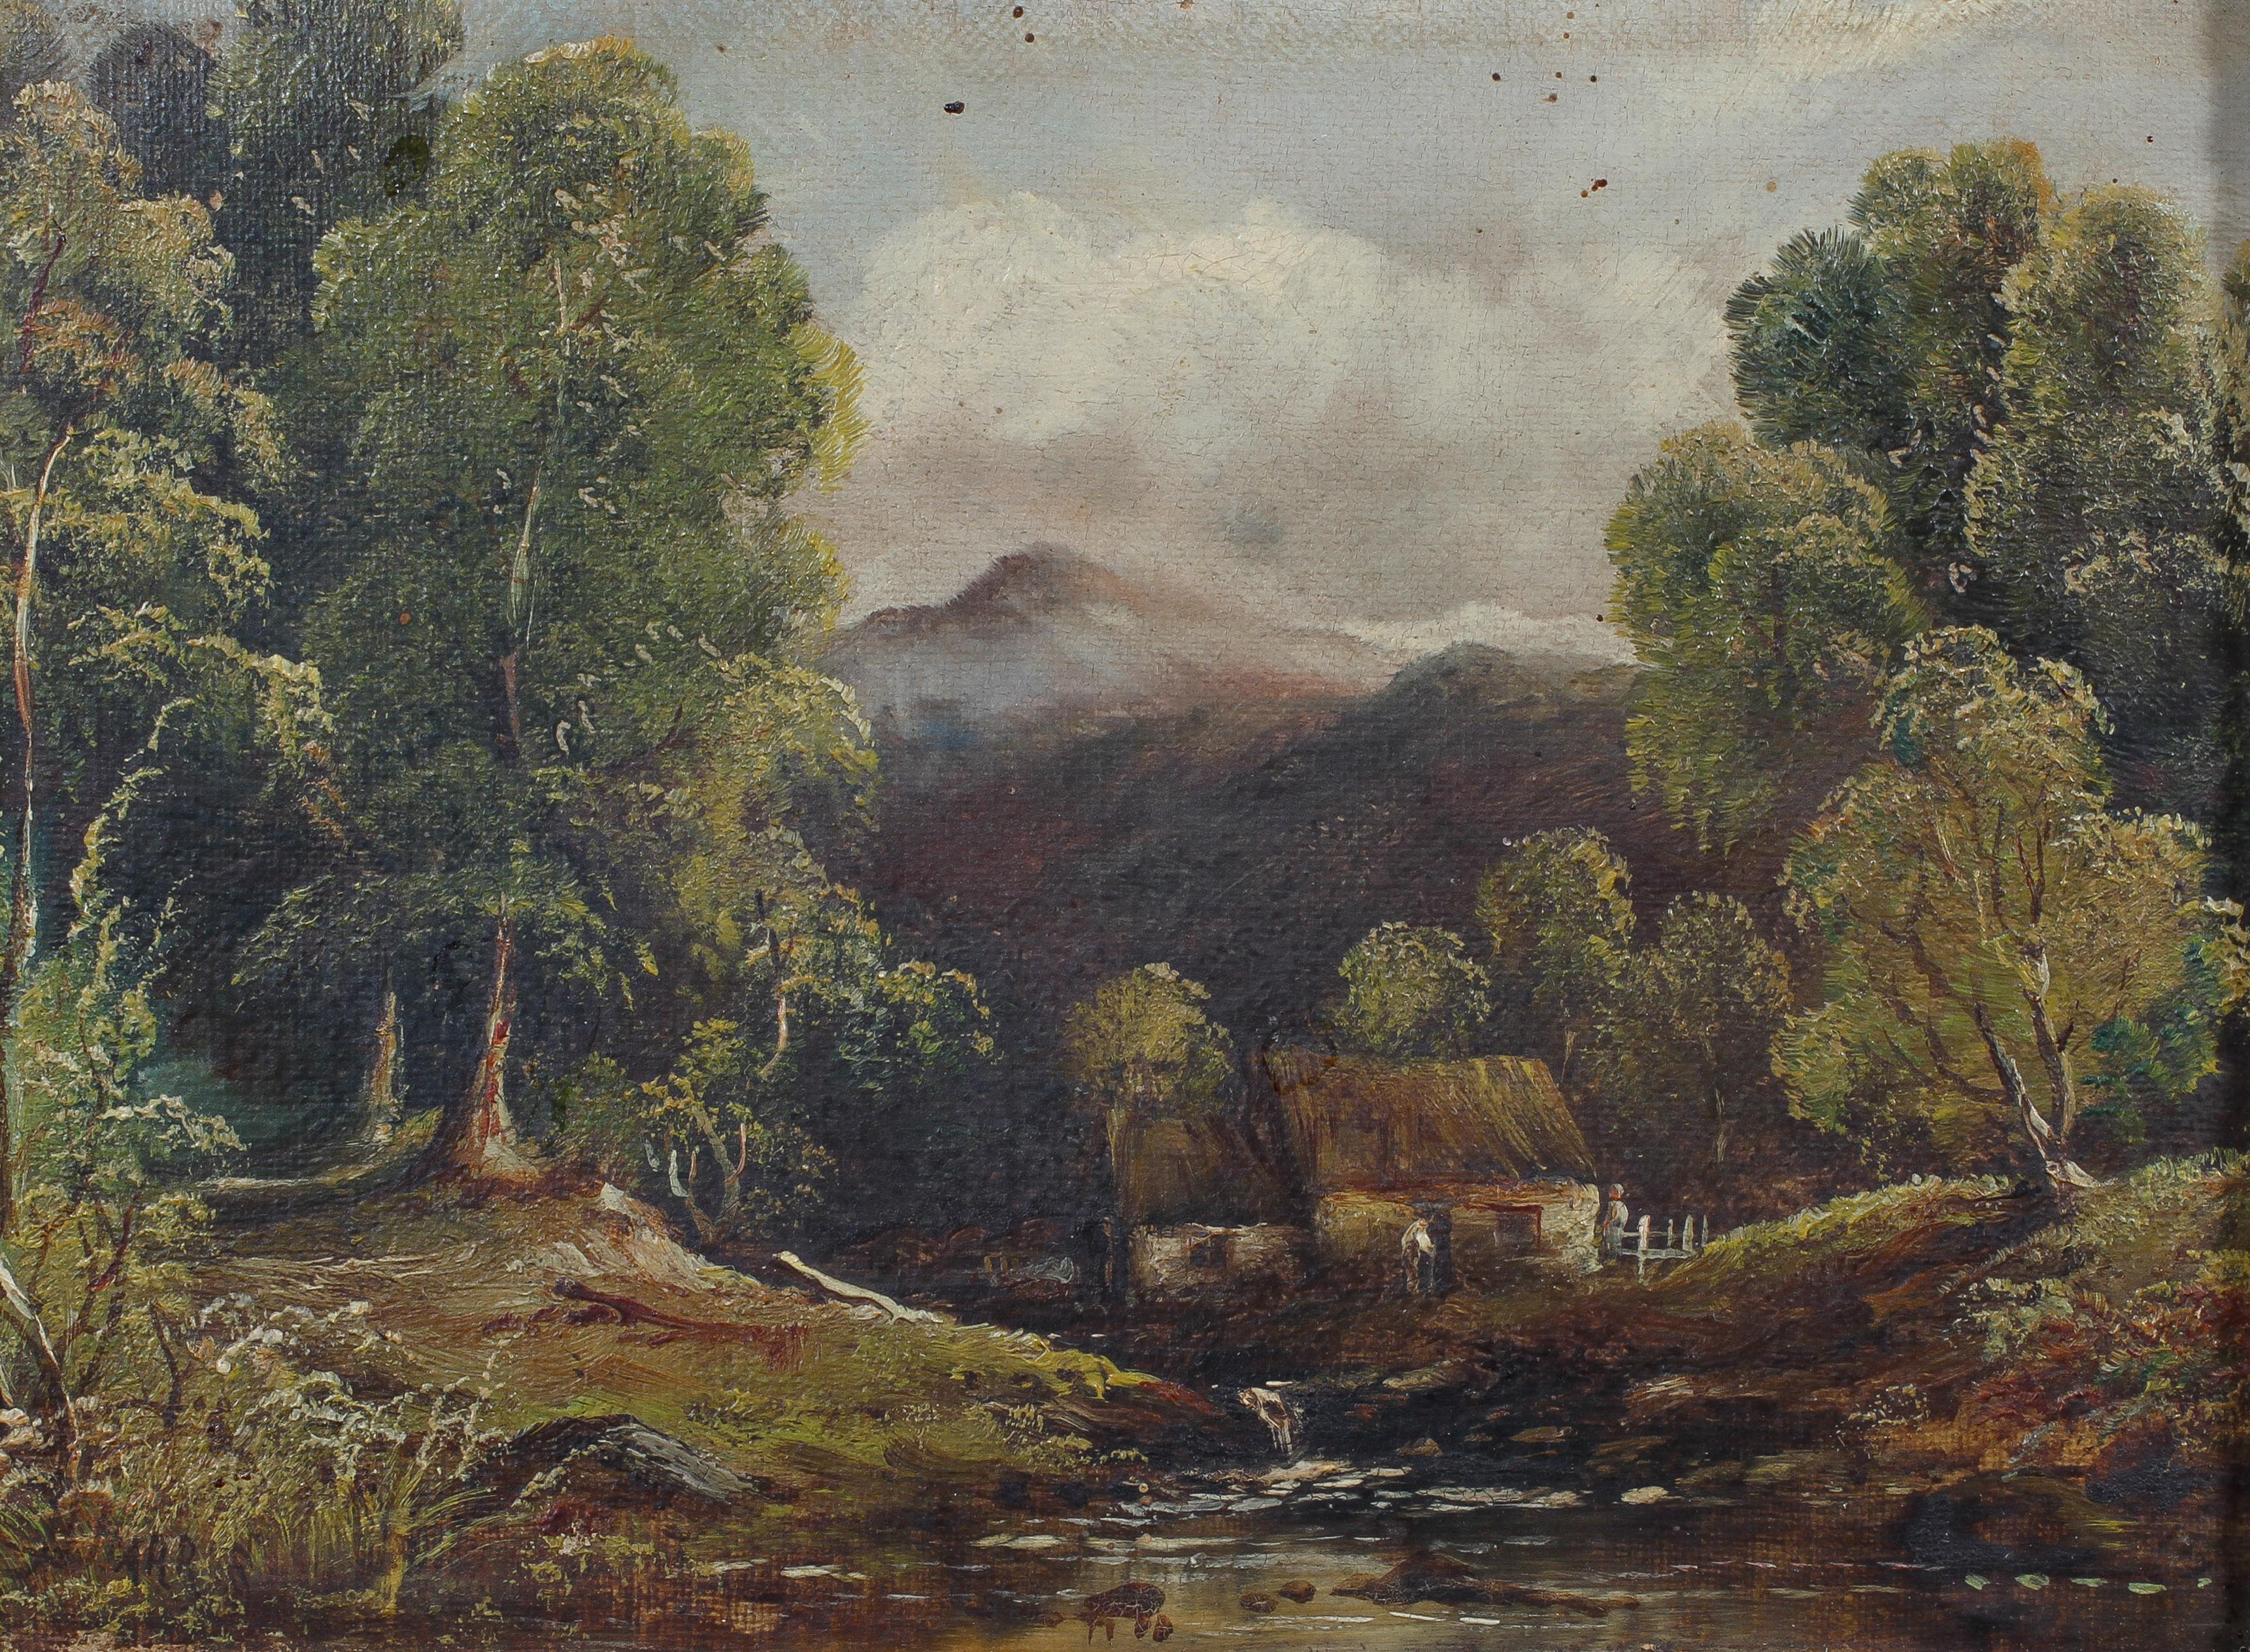 H Harris, three rural landscapes, oil on canvas, within giltwood frames, each signed, - Image 3 of 4